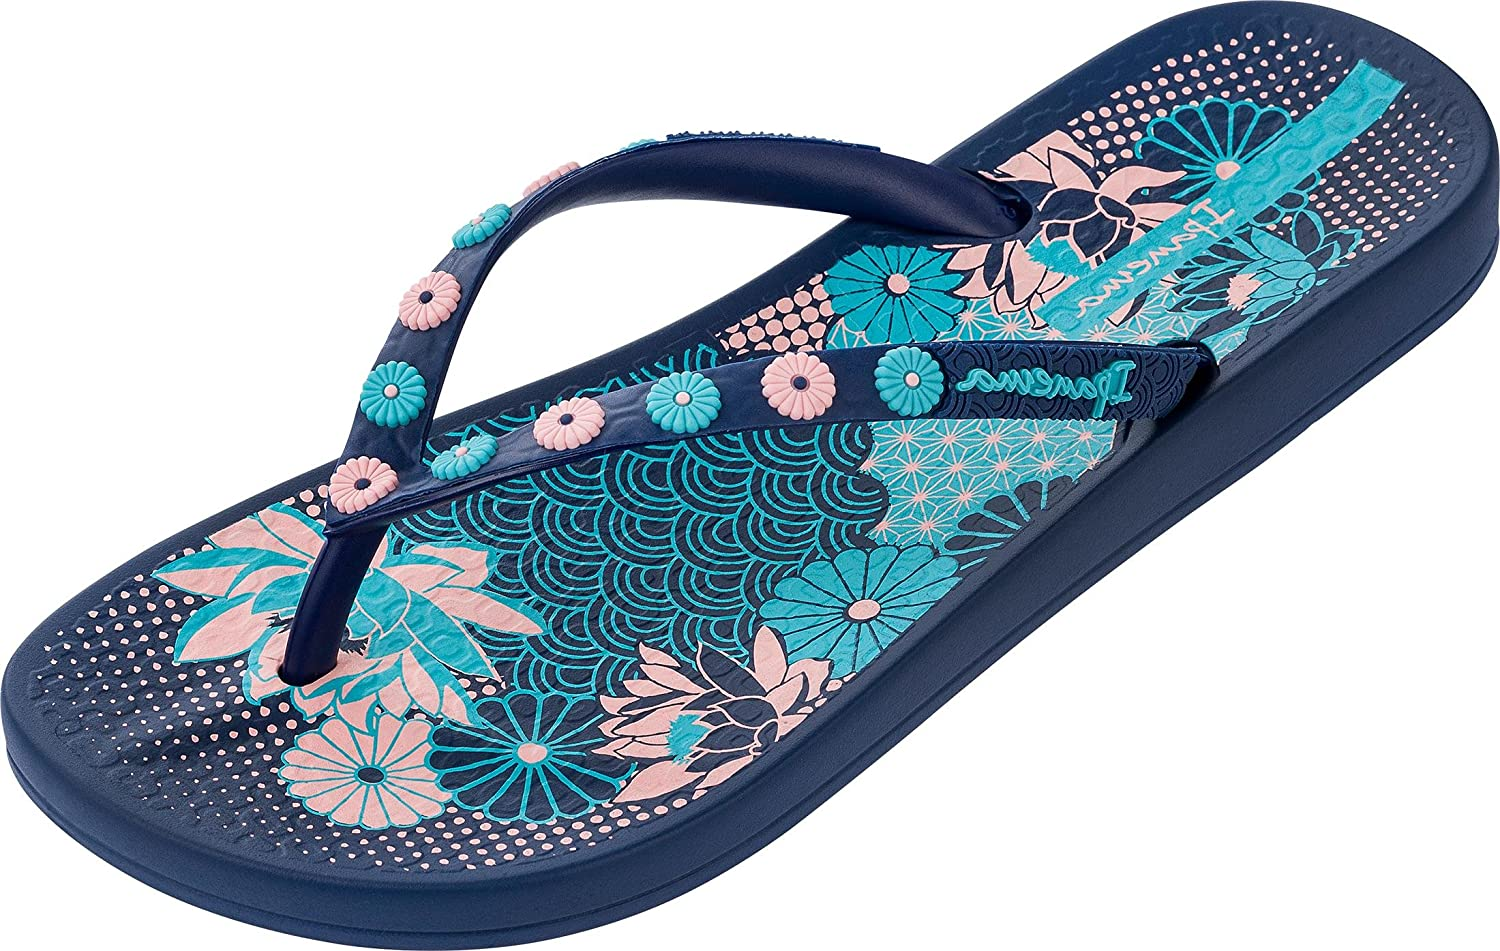 2b67f9d066ee Ipanema Women s Anatomic Lovely Vi Flip Flops  Amazon.co.uk  Shoes   Bags